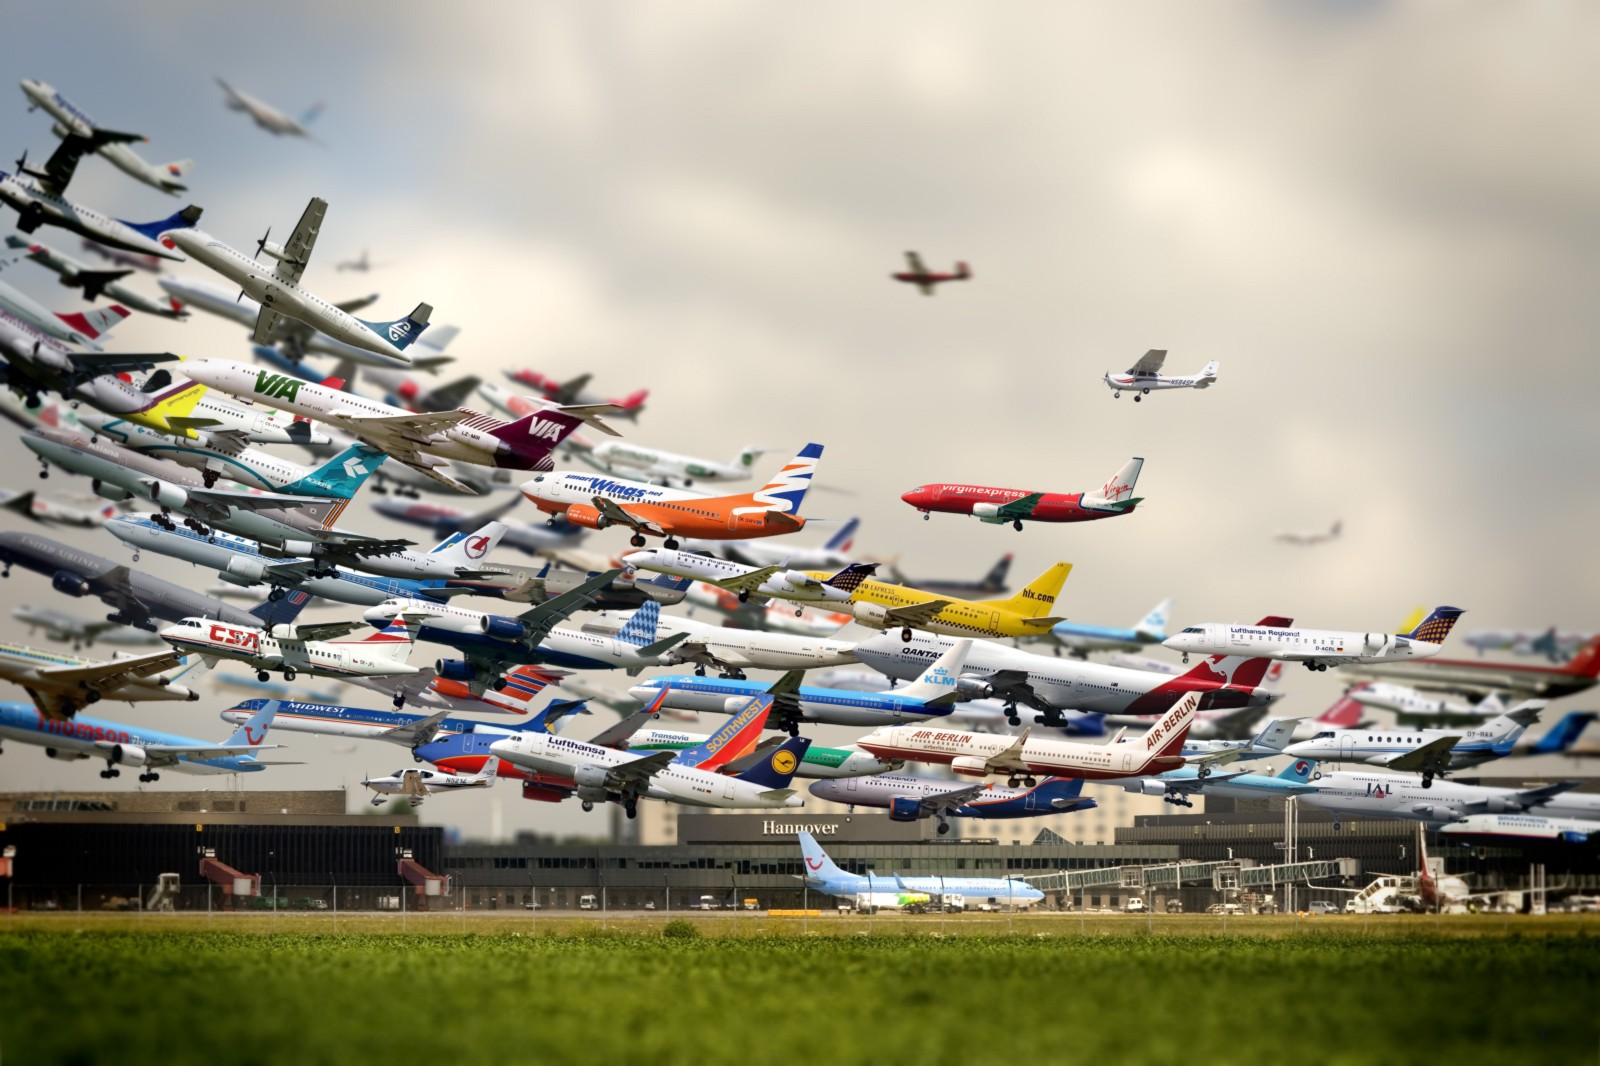 A Composite Image Of Aircraft Taking Off Flughafen By Ho Yeol Ryu